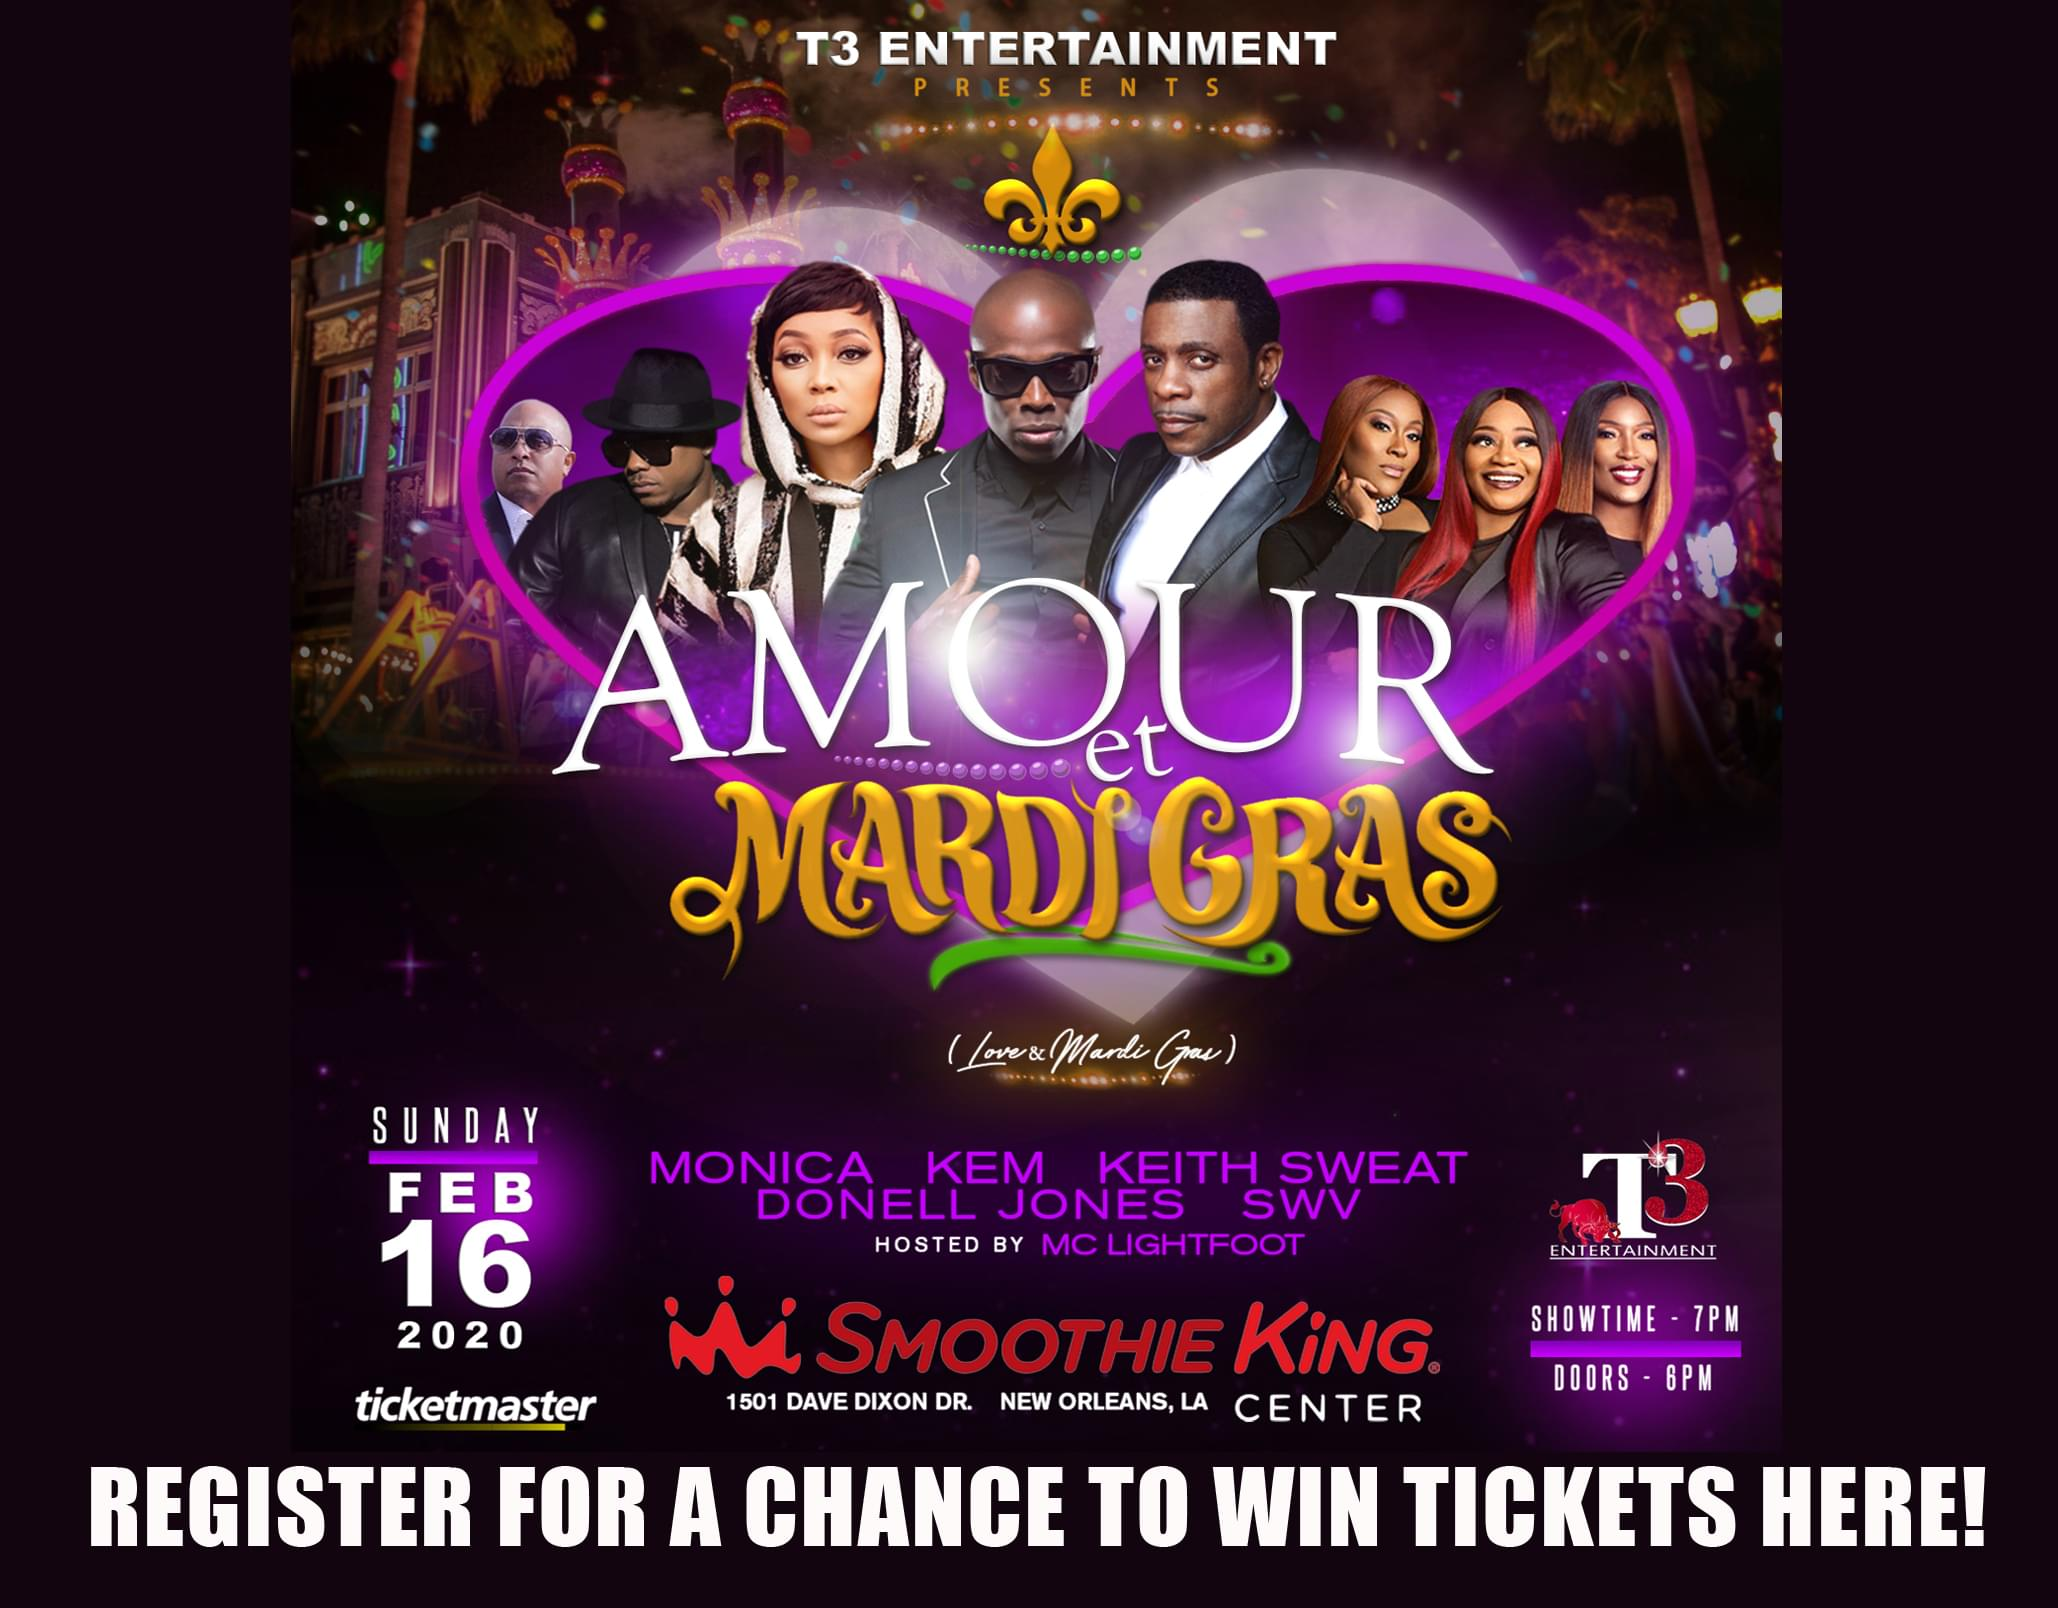 Win Tickets to Amour et Mardi Gras